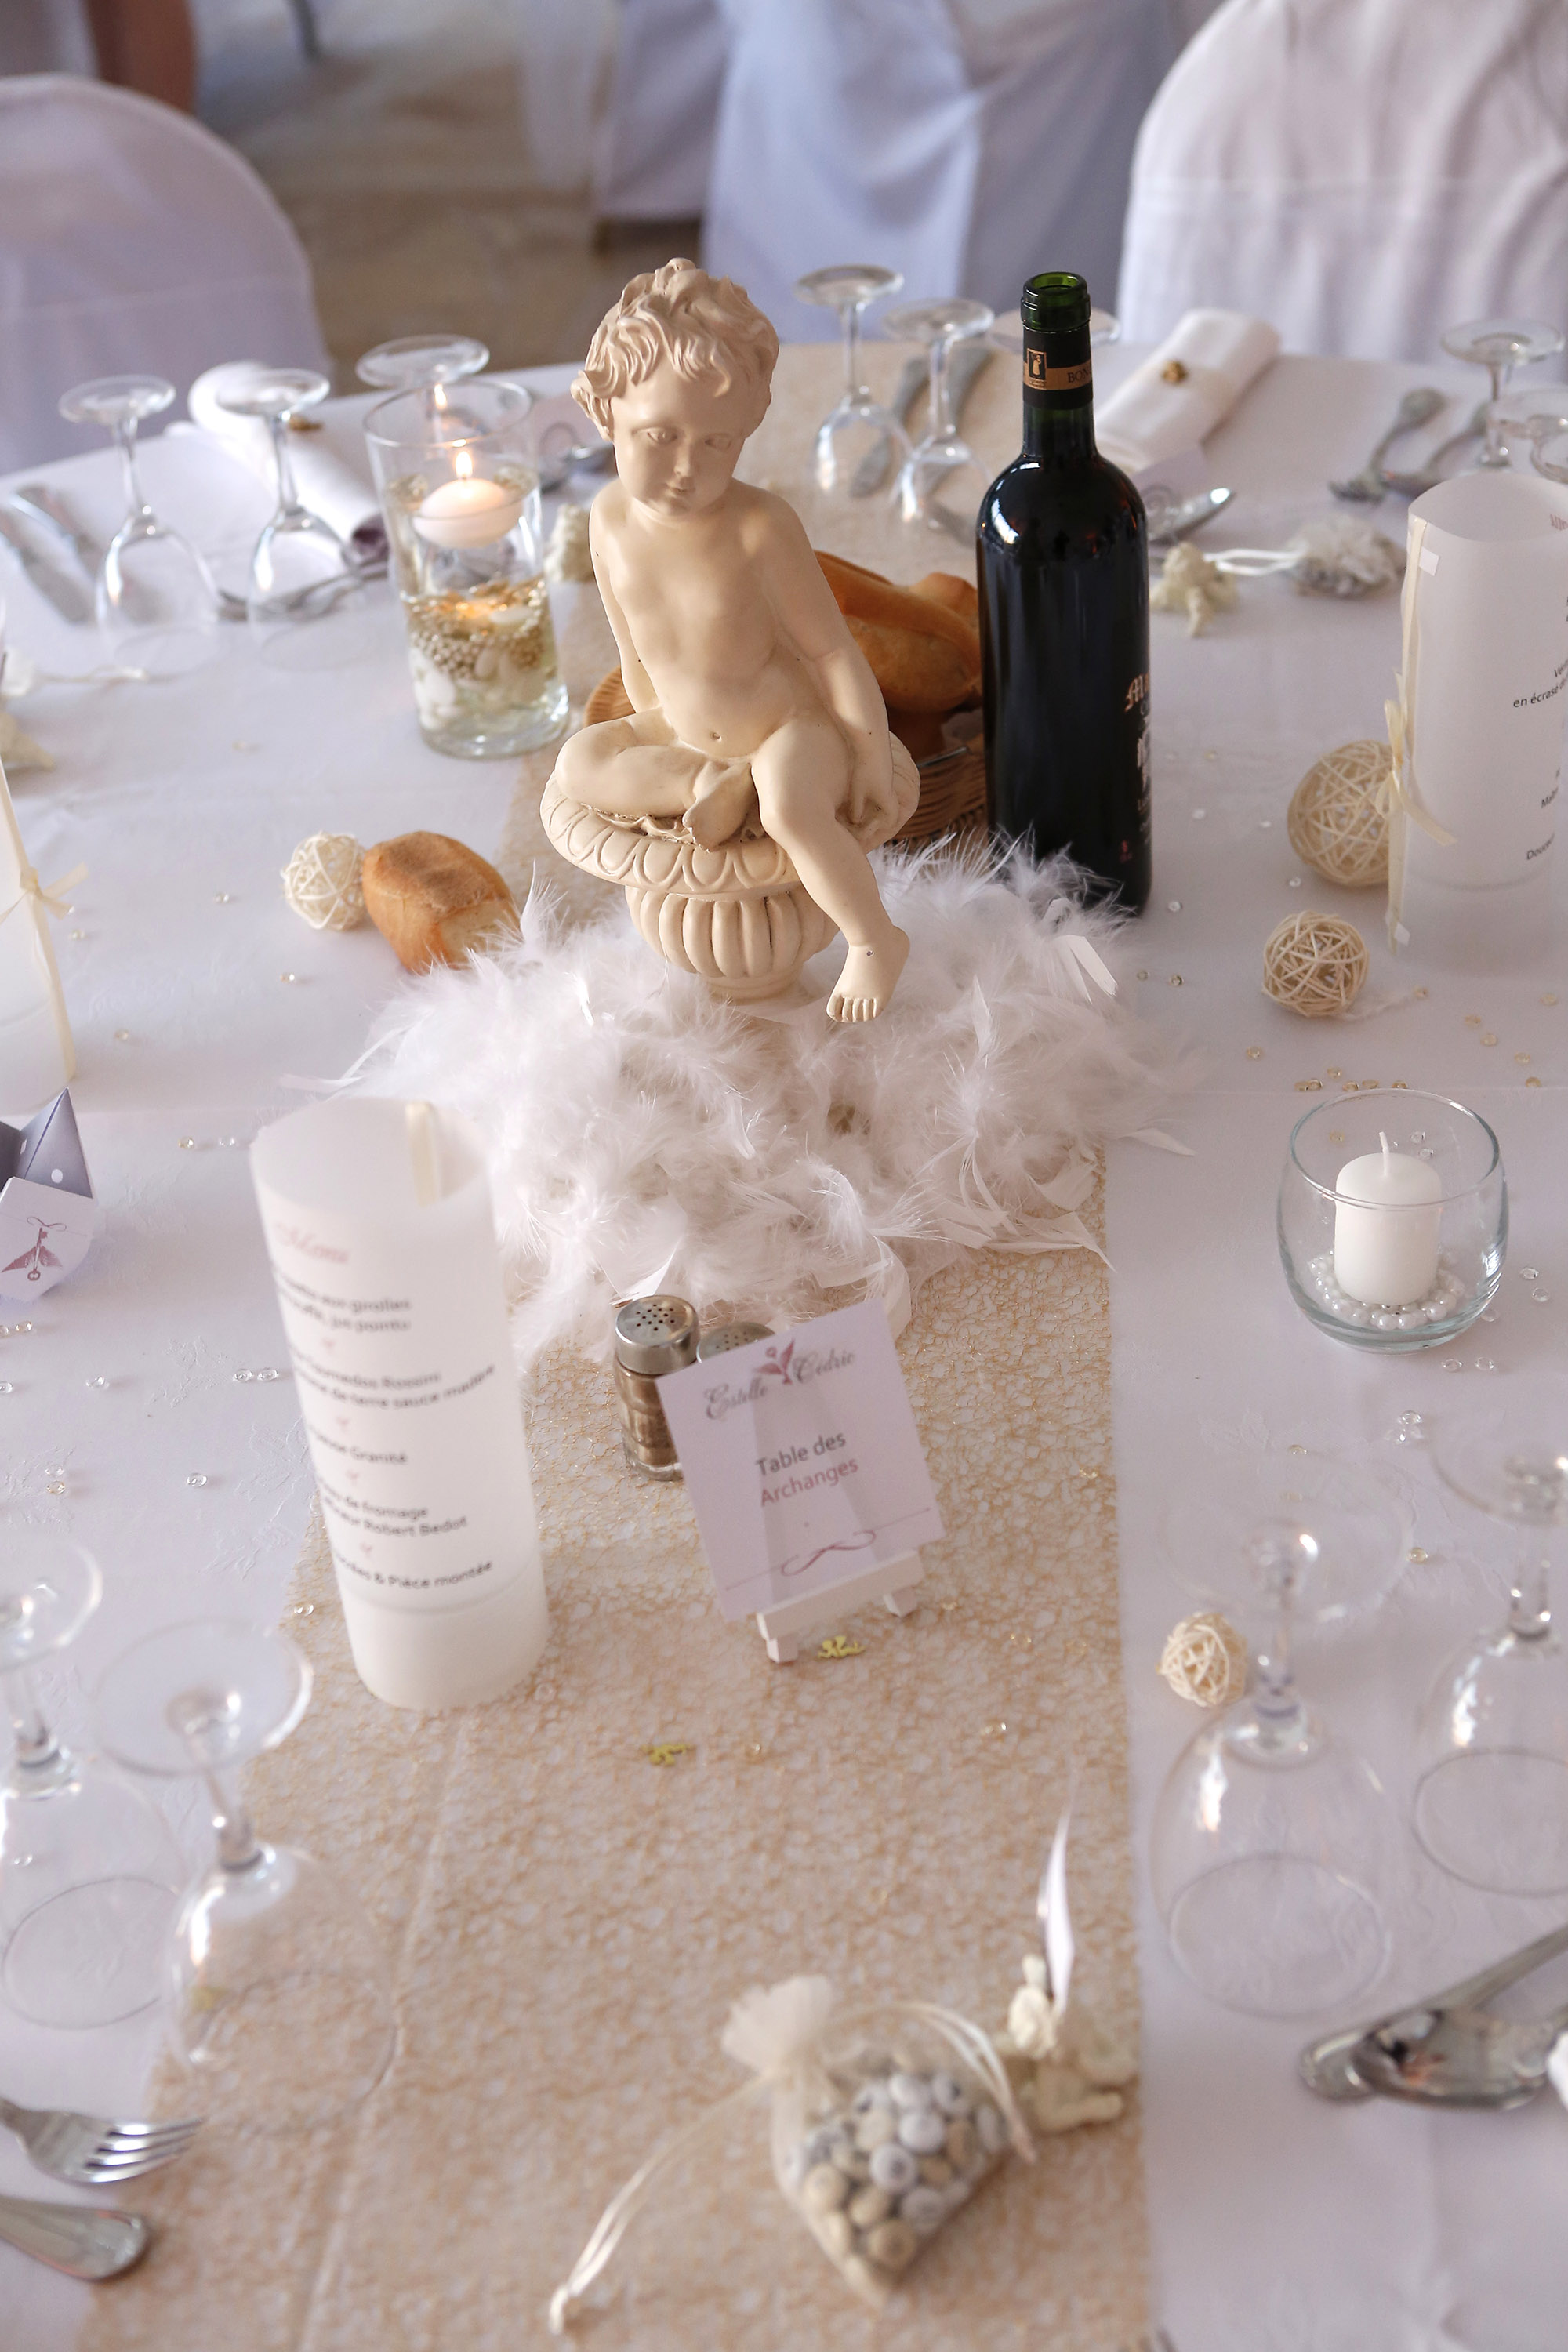 Une d coration de table sur le th me des anges du bonheur en cr ation - Decoration bapteme theme ange ...